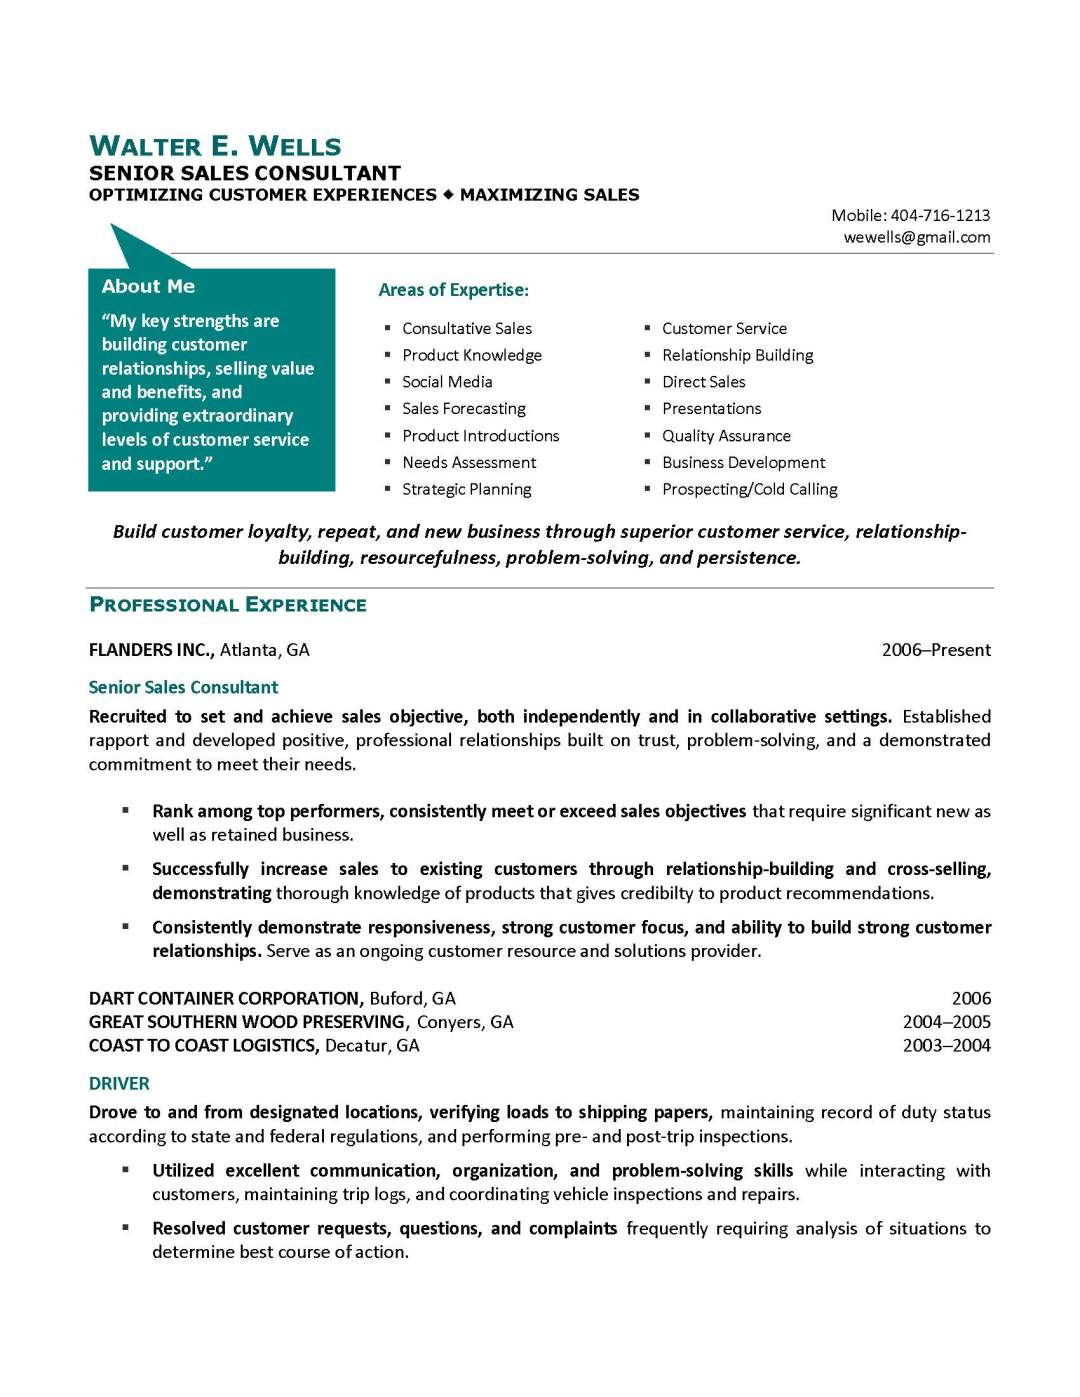 senior sales consultant resume sample, provided by Elite Resume Writing Services